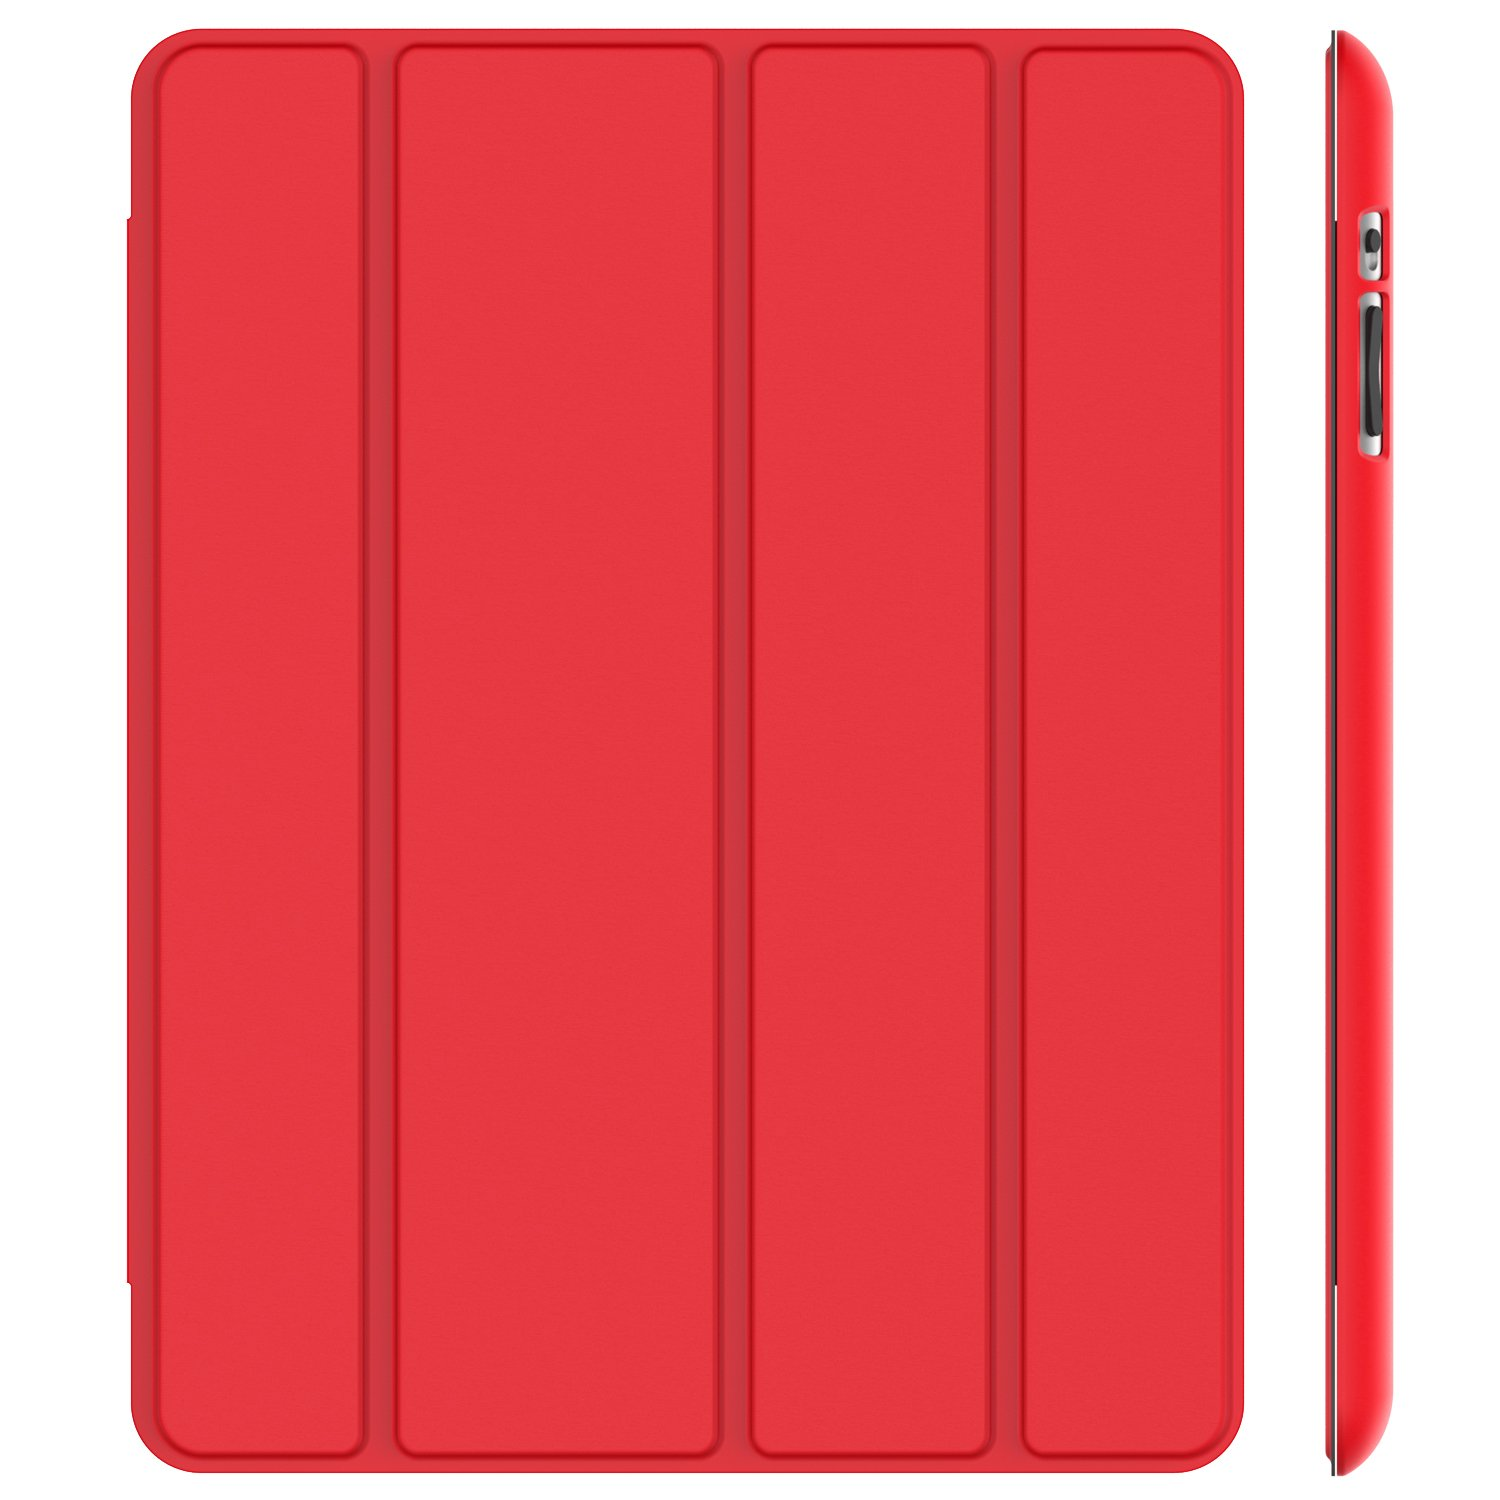 JETech Case for iPad 2 3 4 (Old Model), Smart Cover with Auto Sleep/Wake, Red J0216